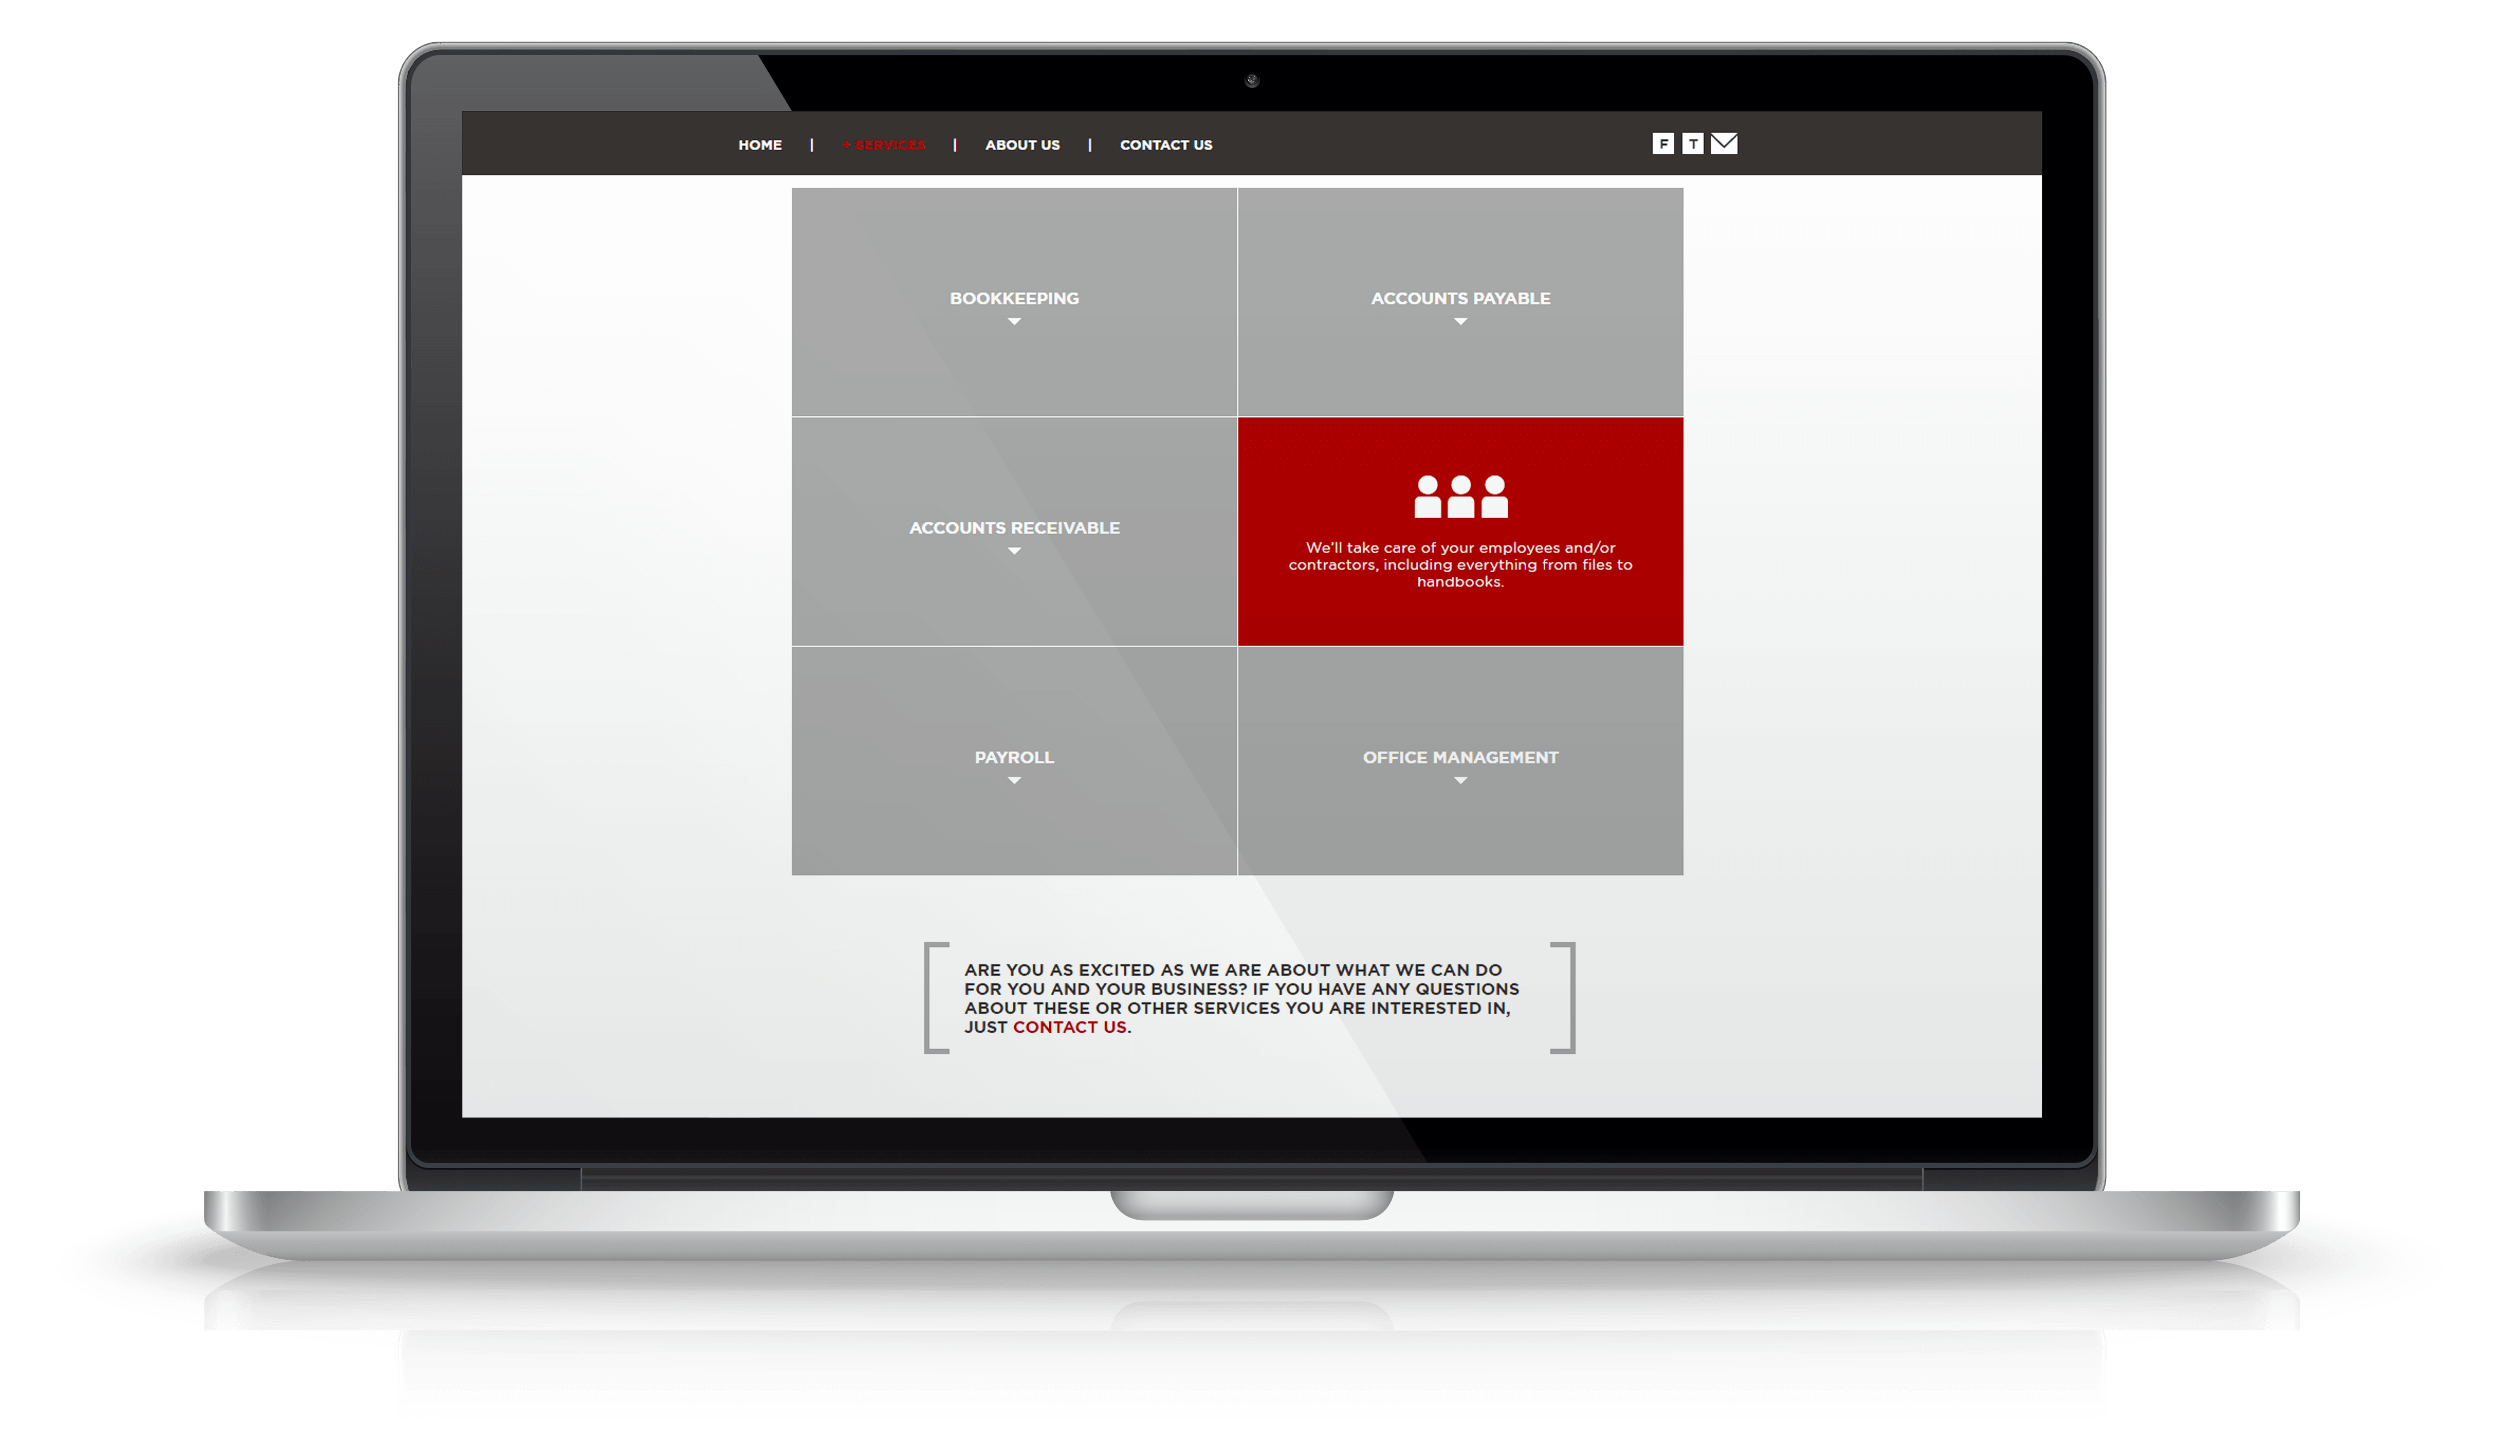 Pixelnation Project: Ketter Roe Website - Services Page